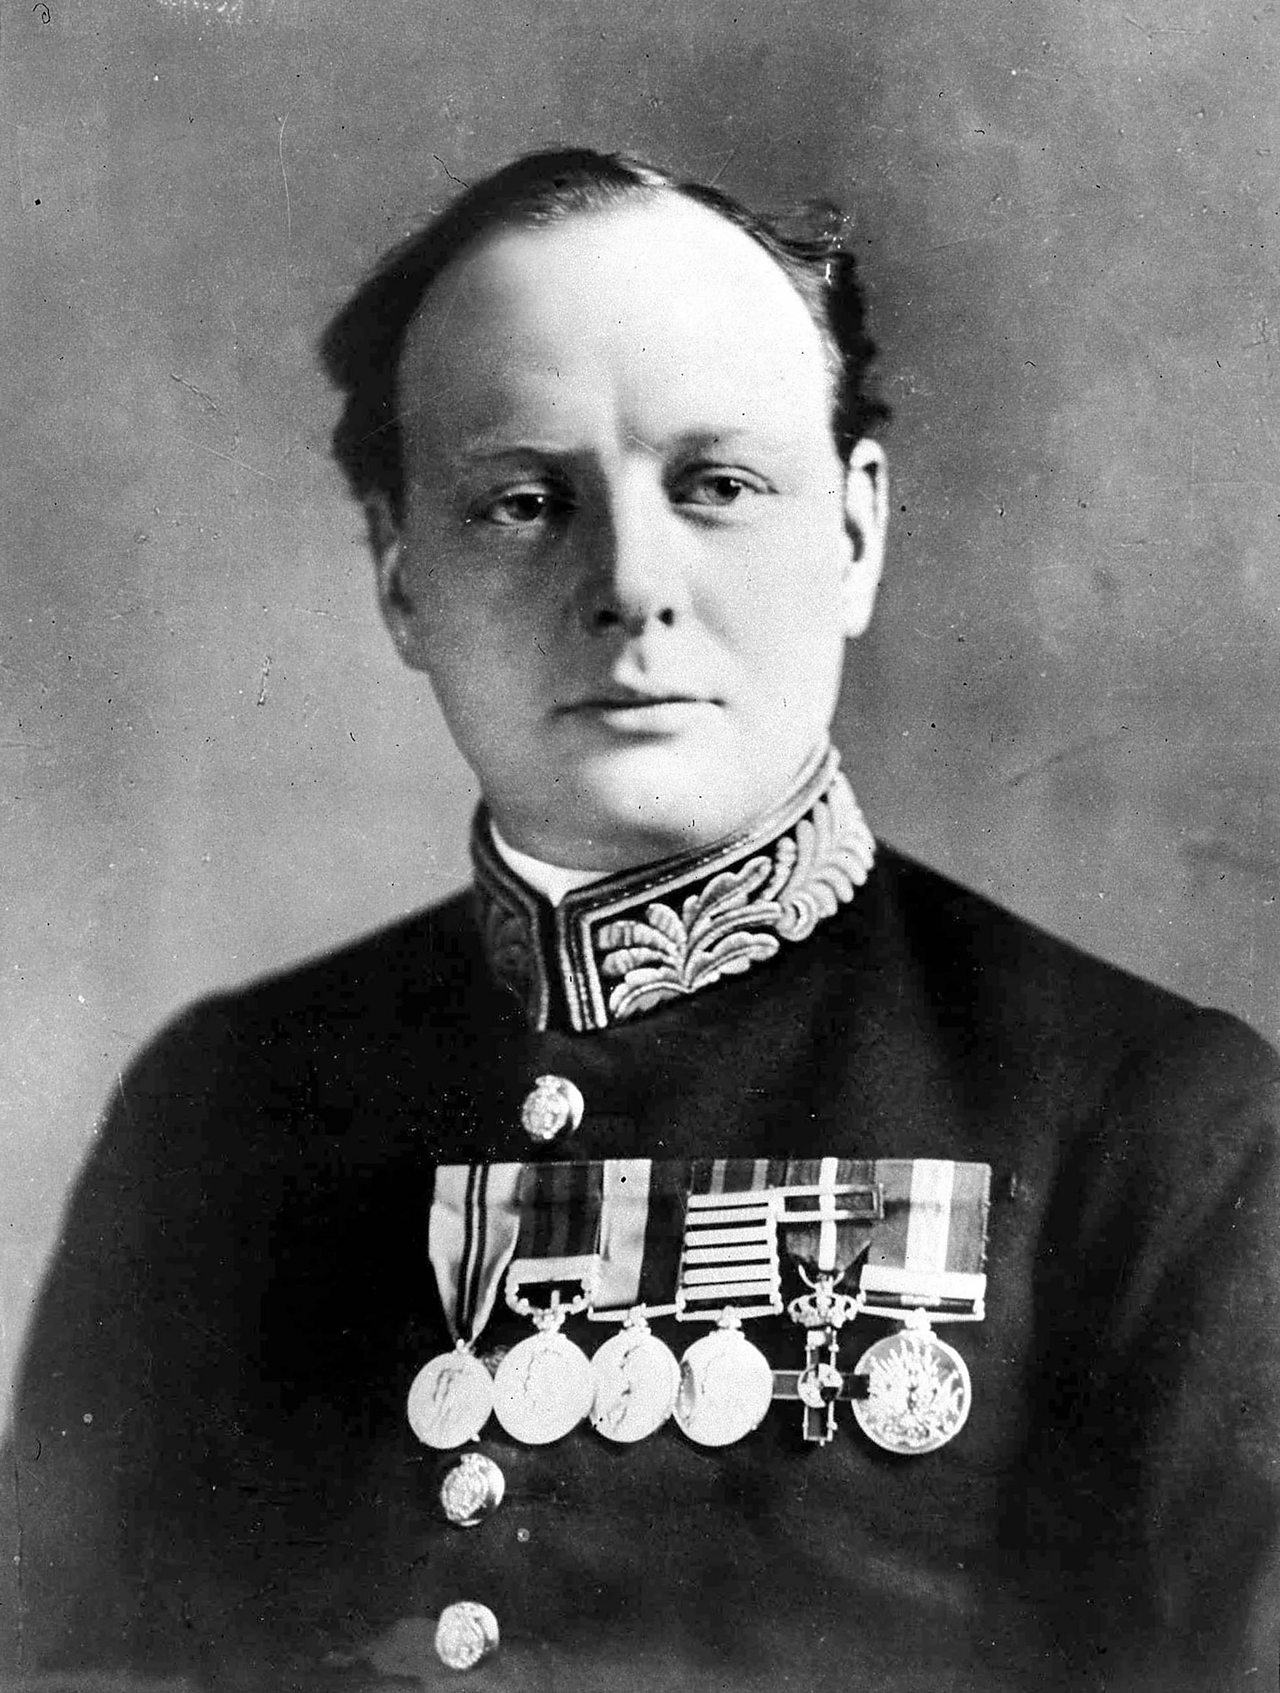 Winston Churchill as First Lord of the Admiralty in 1914.